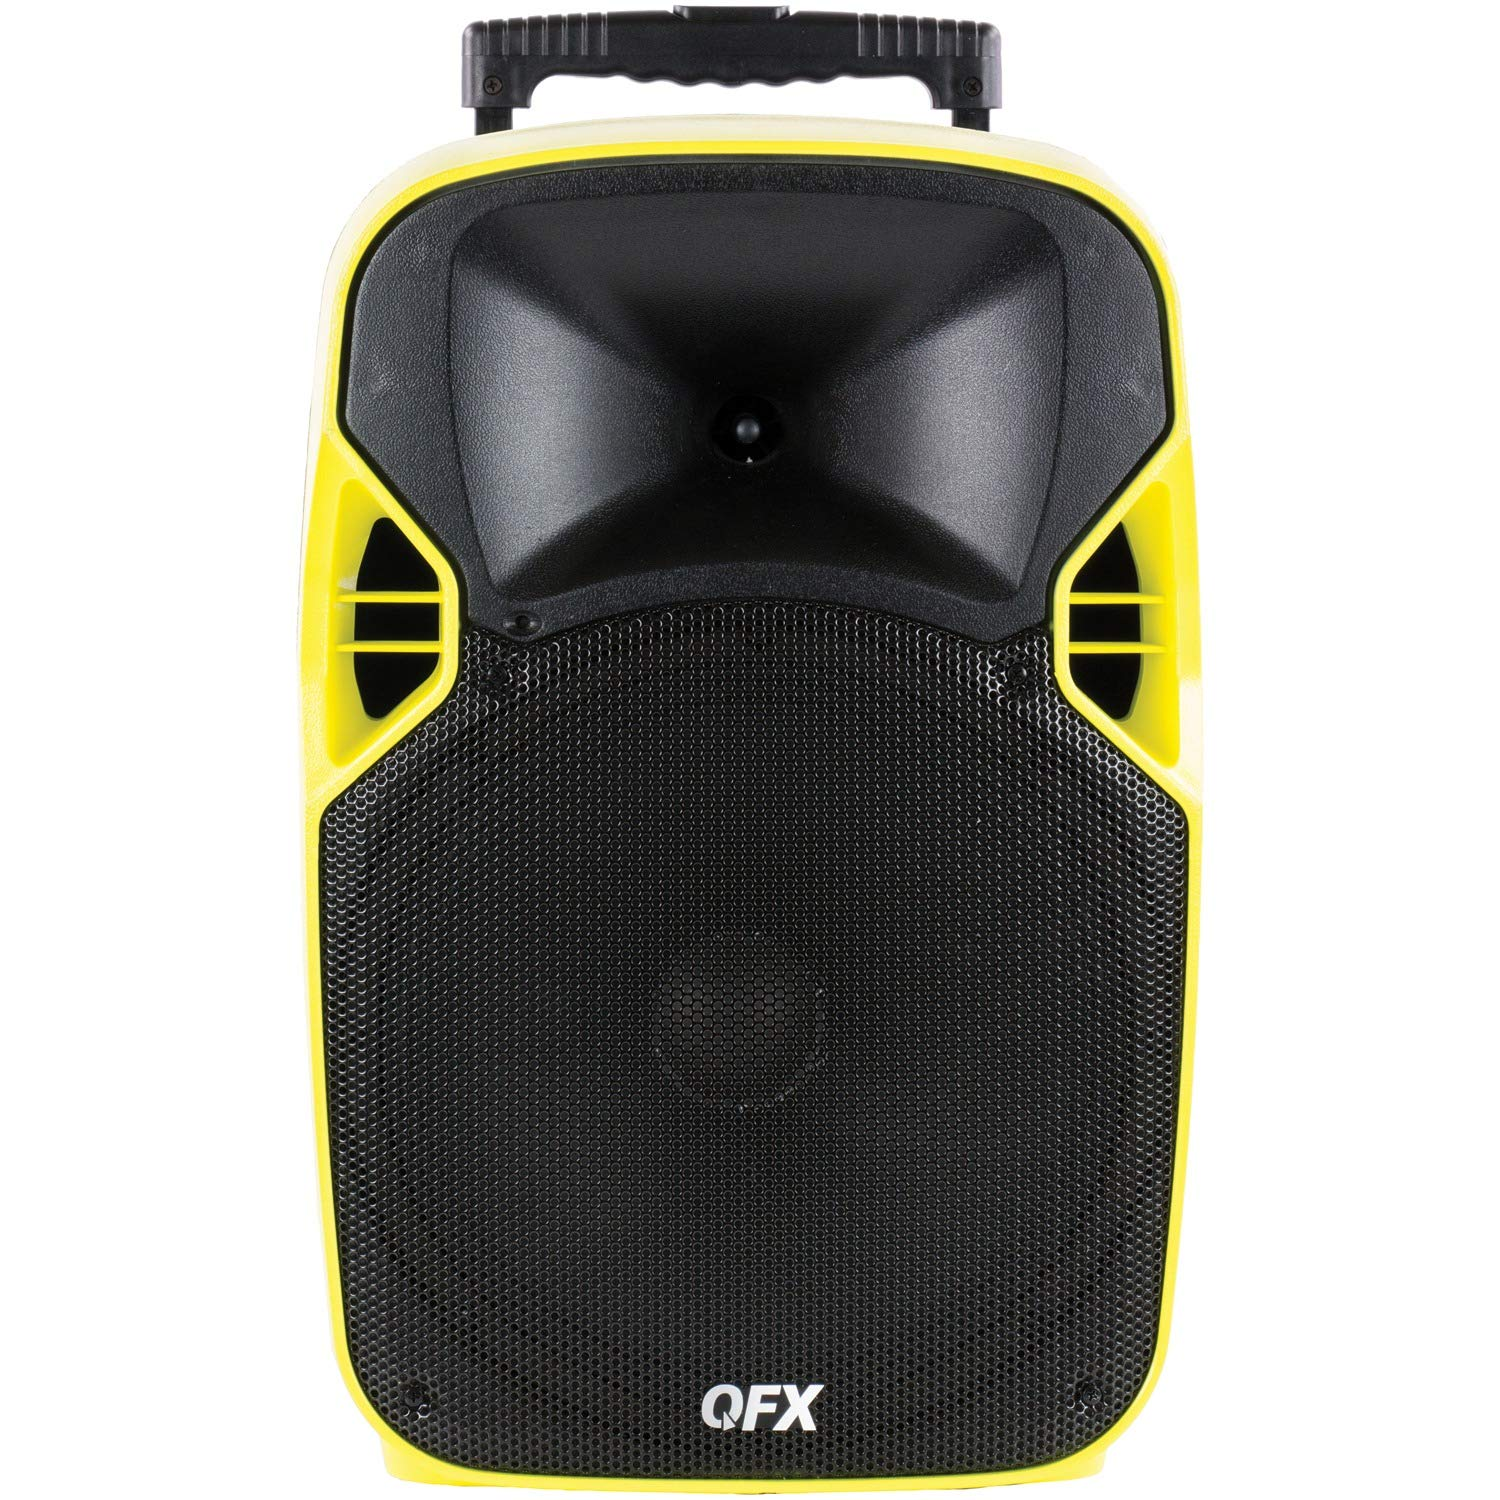 QFX PBX-6000 Portable Projector/Speaker with 70-inch Screen